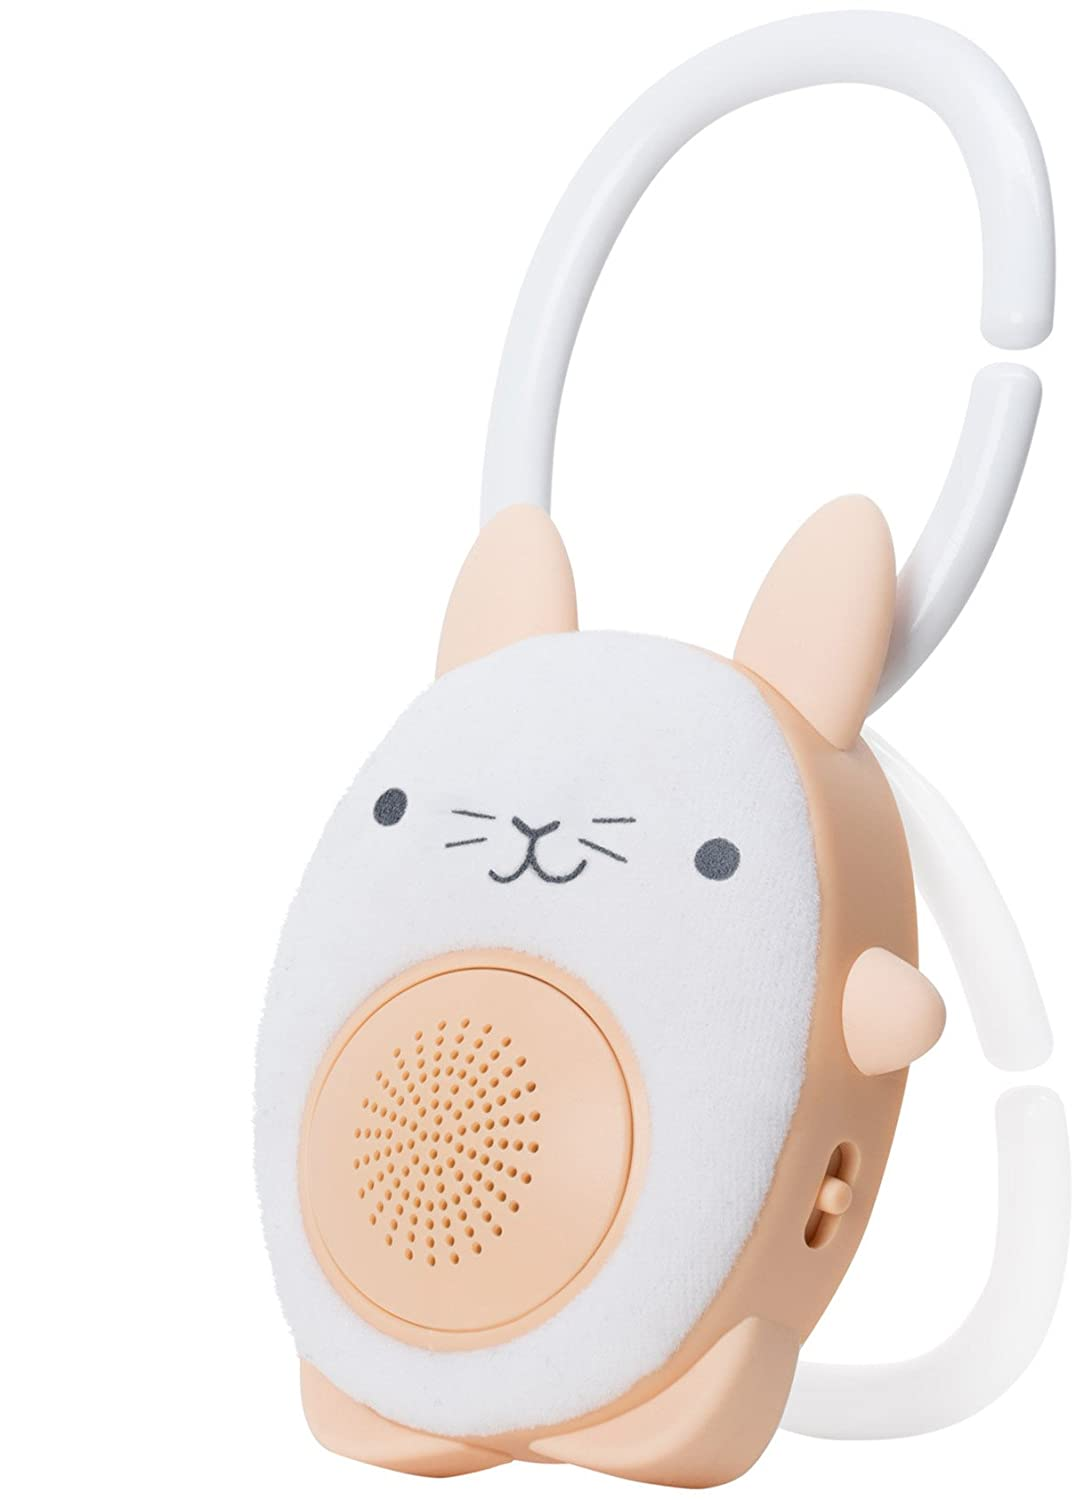 SoundBub, White Noise Machine and Bluetooth Speaker | Portable and Rechargeable On-the-Go Infant Shusher & Baby Sleep Aid Sound Soother by WavHello – Benji the Bear, Brown WH-21-433